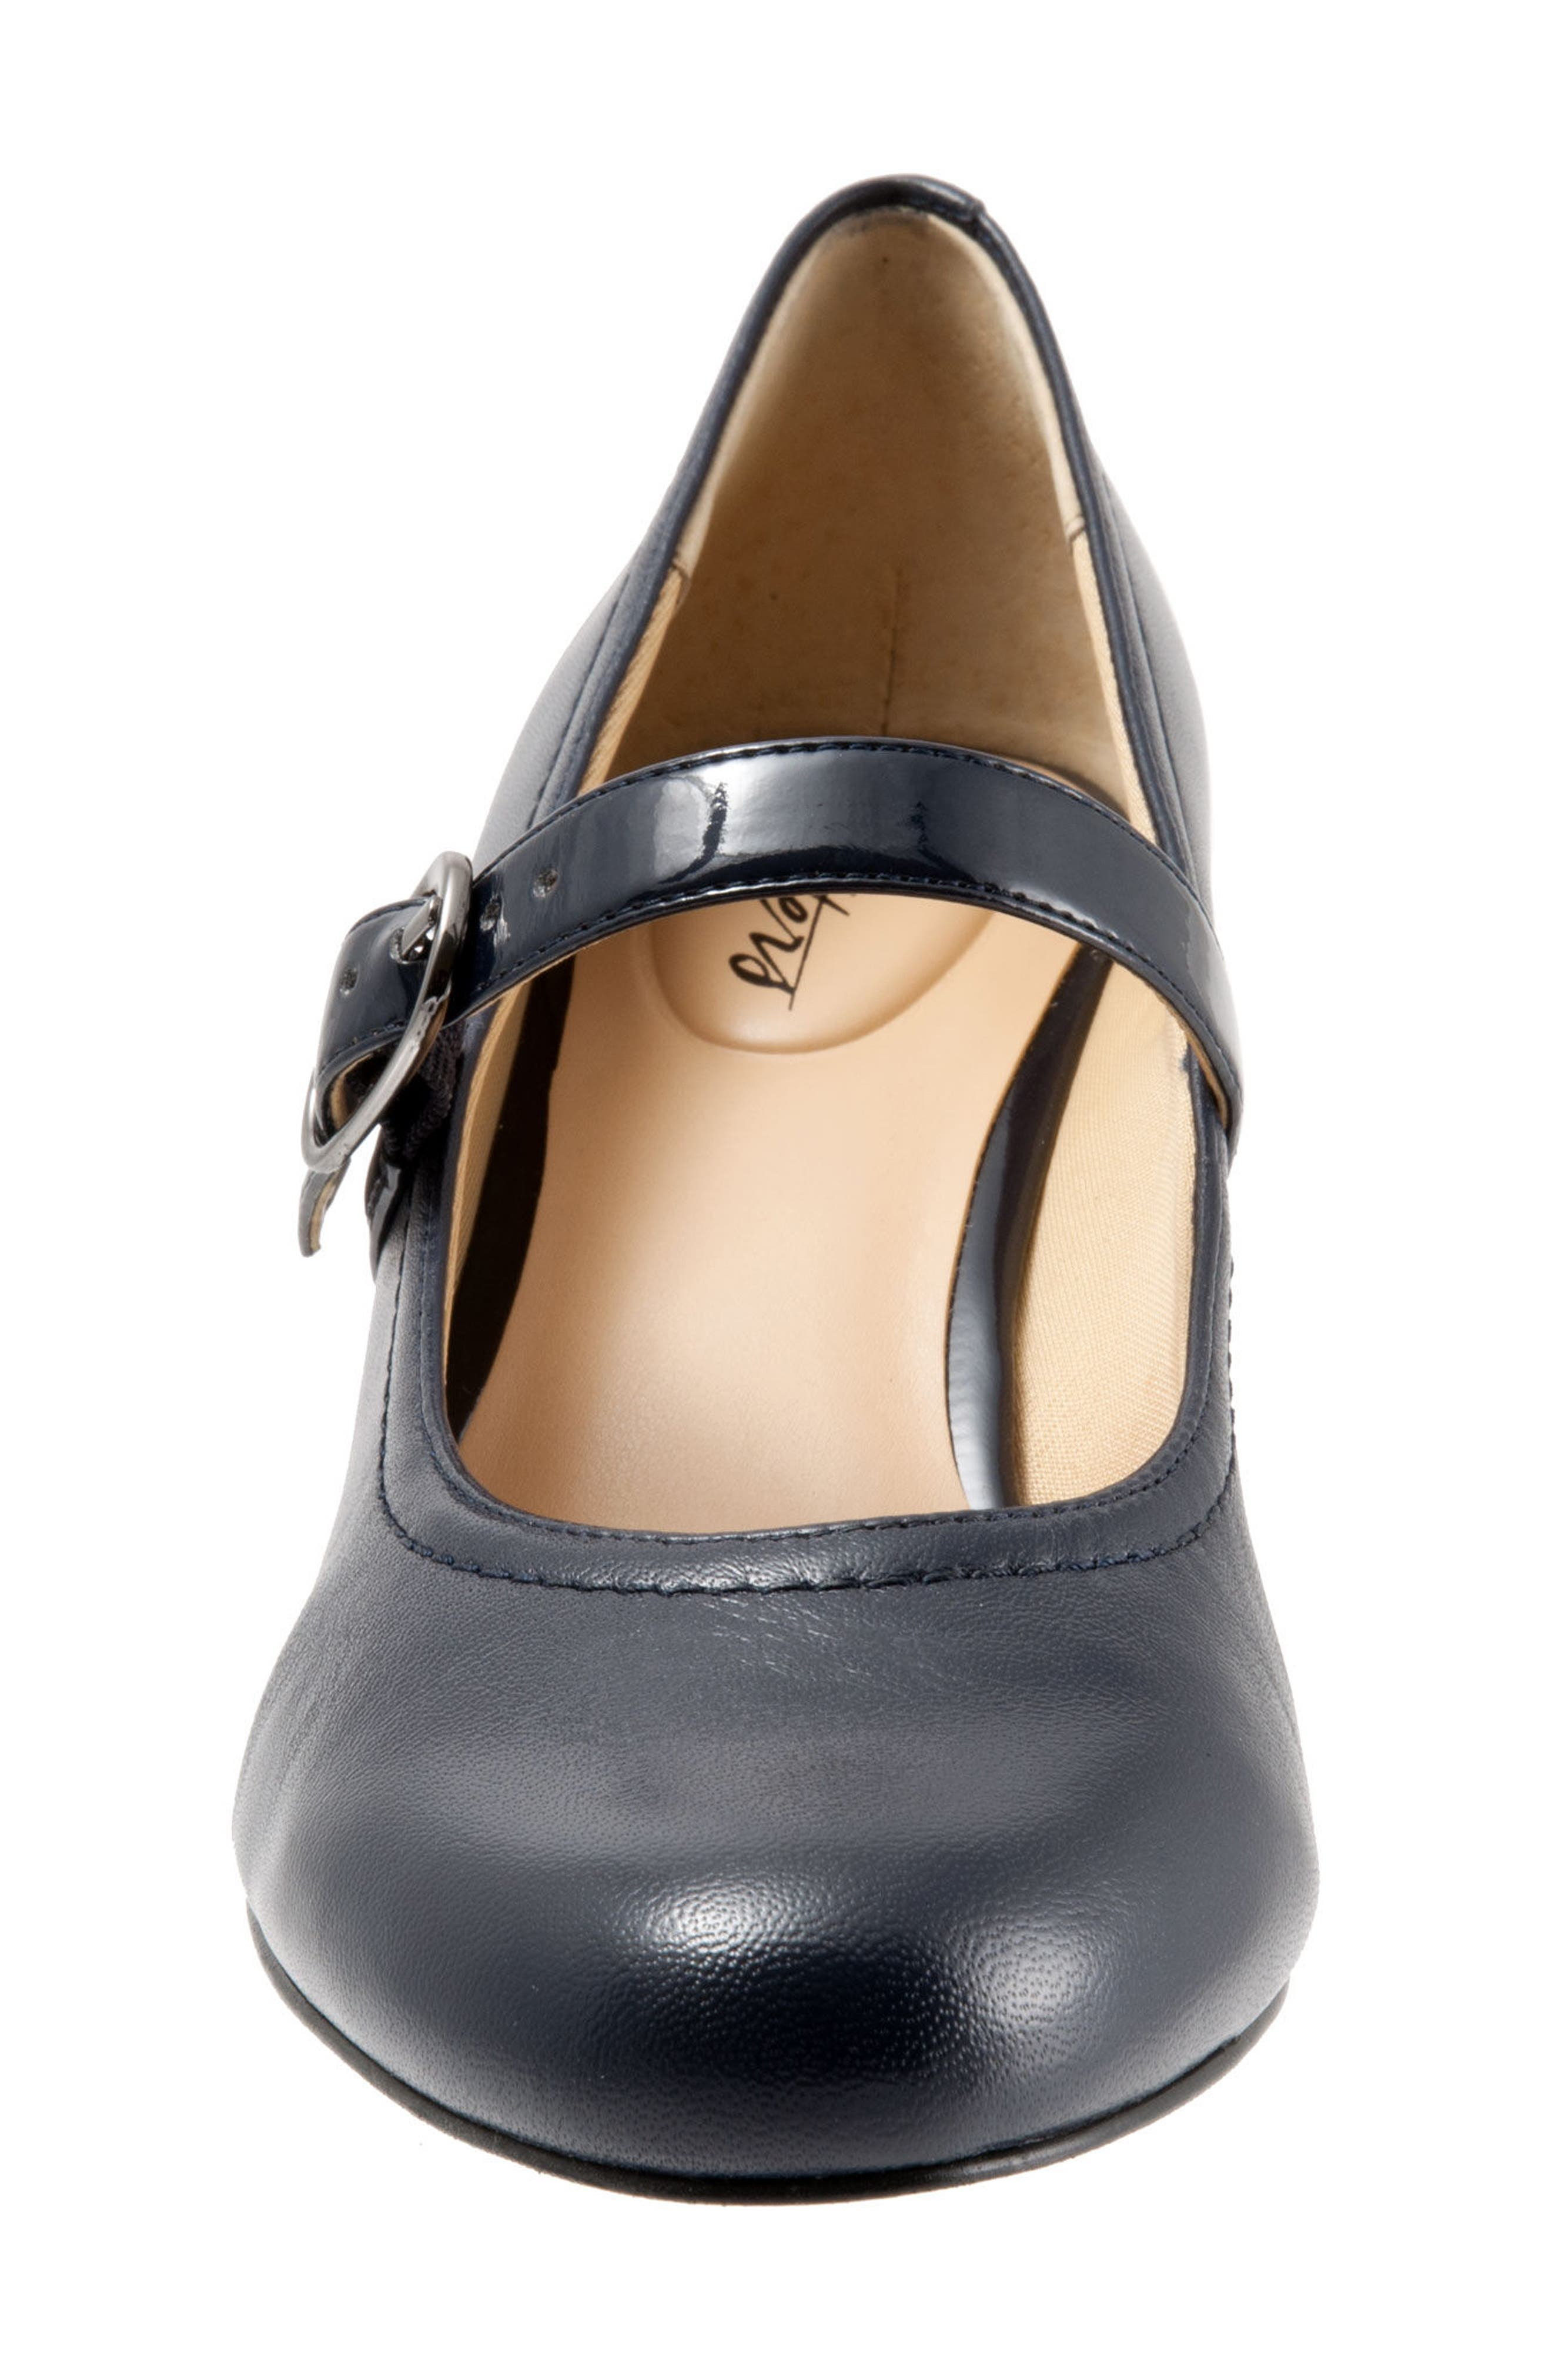 'Candice' Mary Jane Pump,                             Alternate thumbnail 4, color,                             NAVY LEATHER